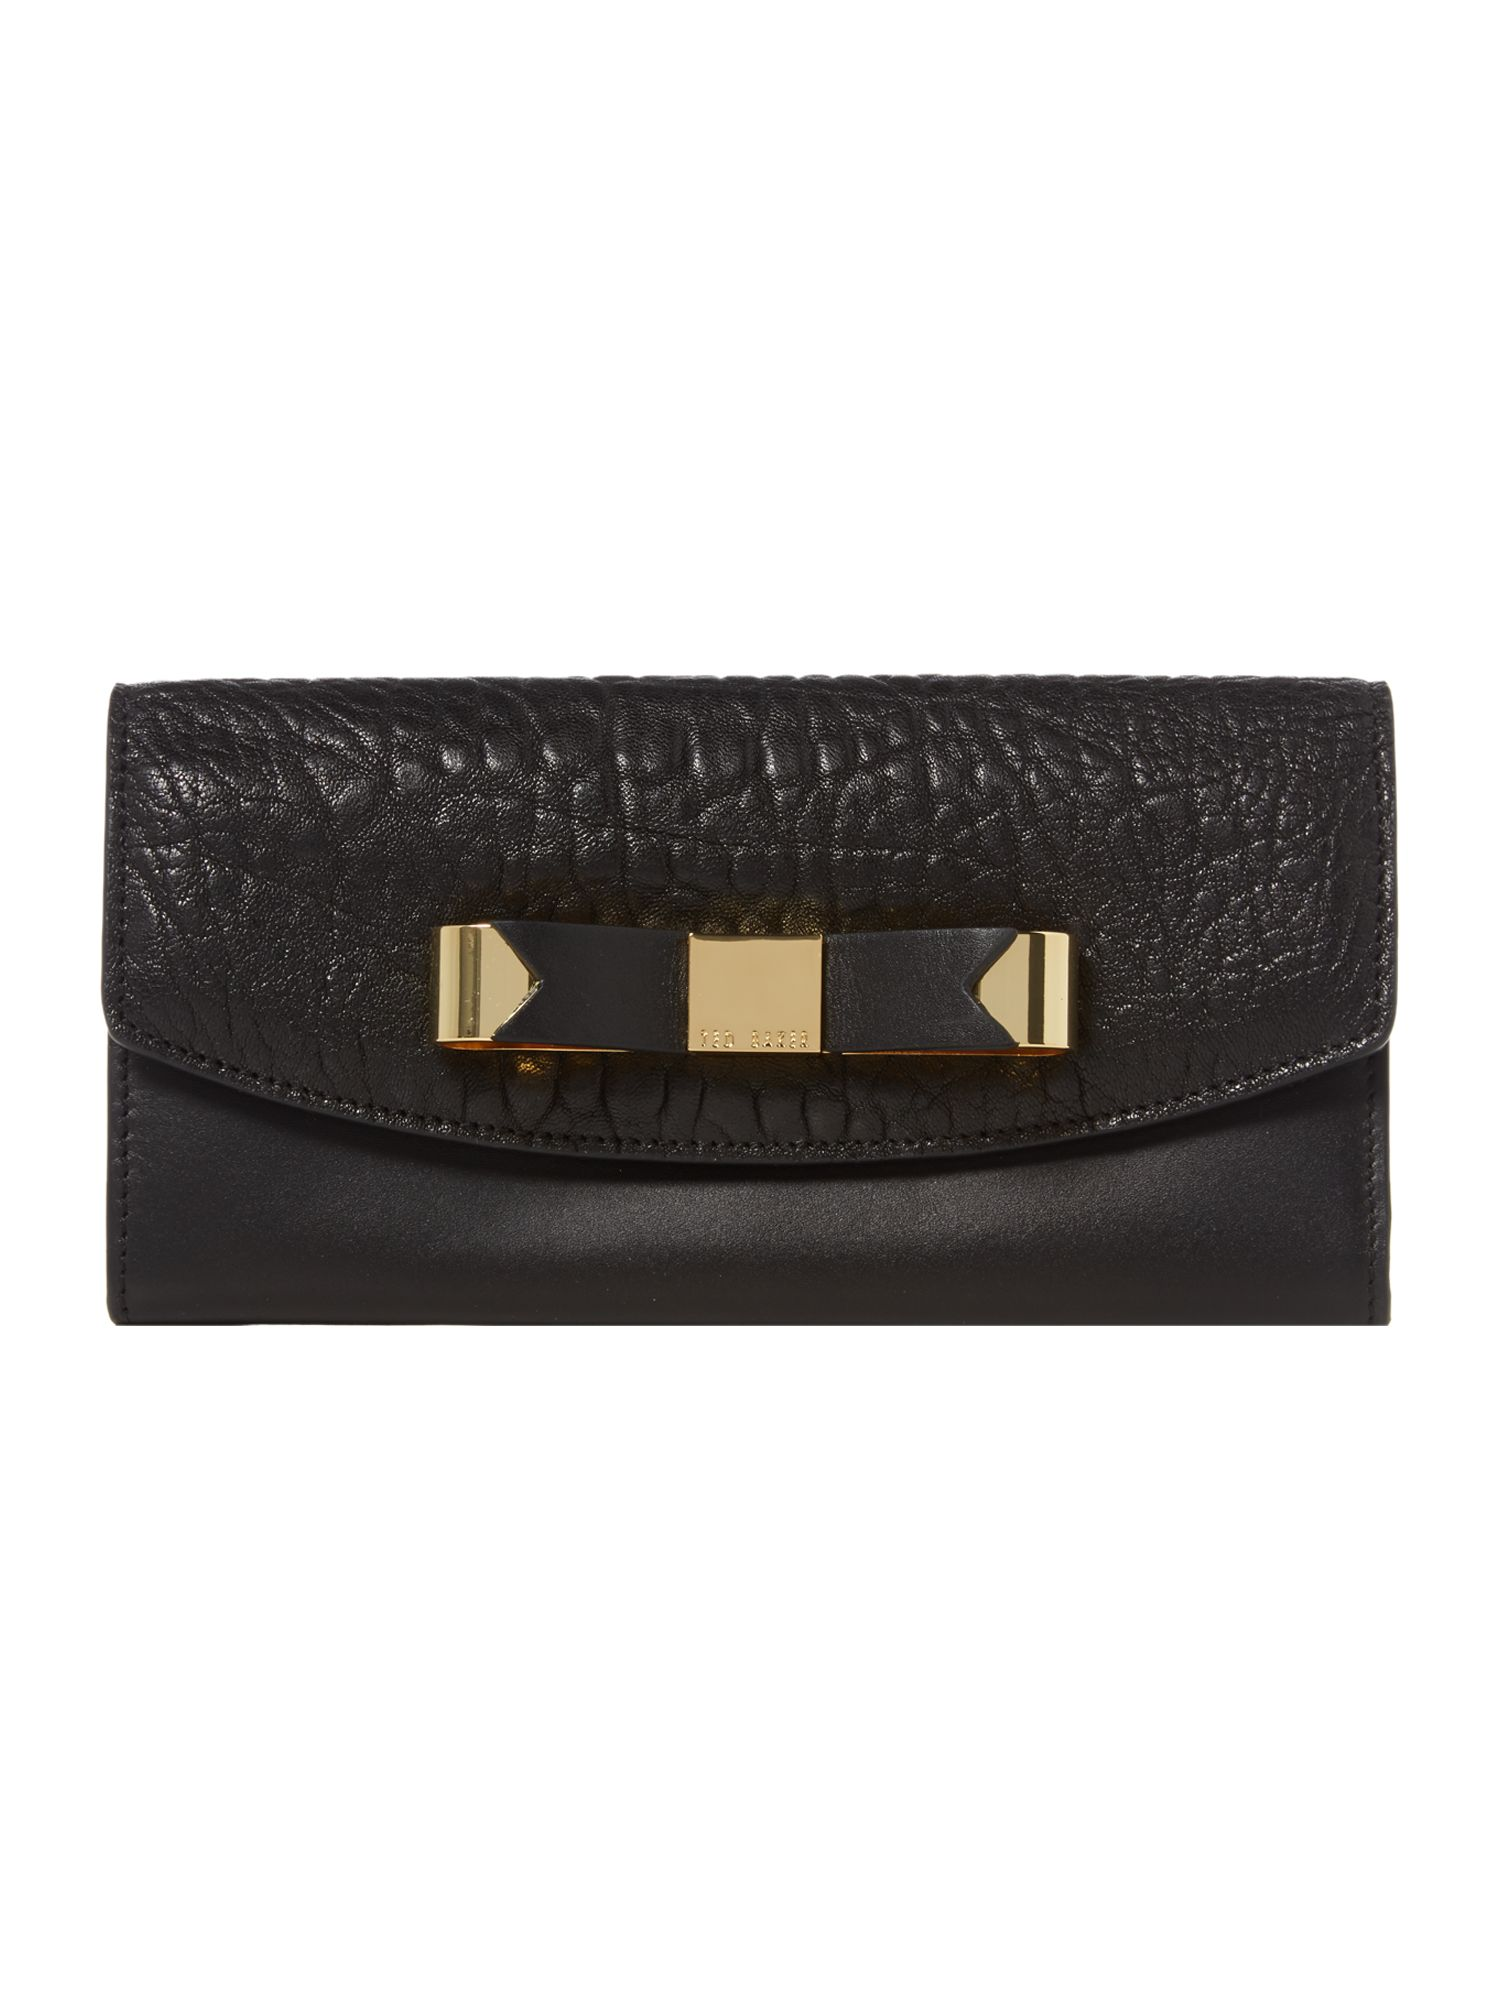 Black bow leather flapover purse